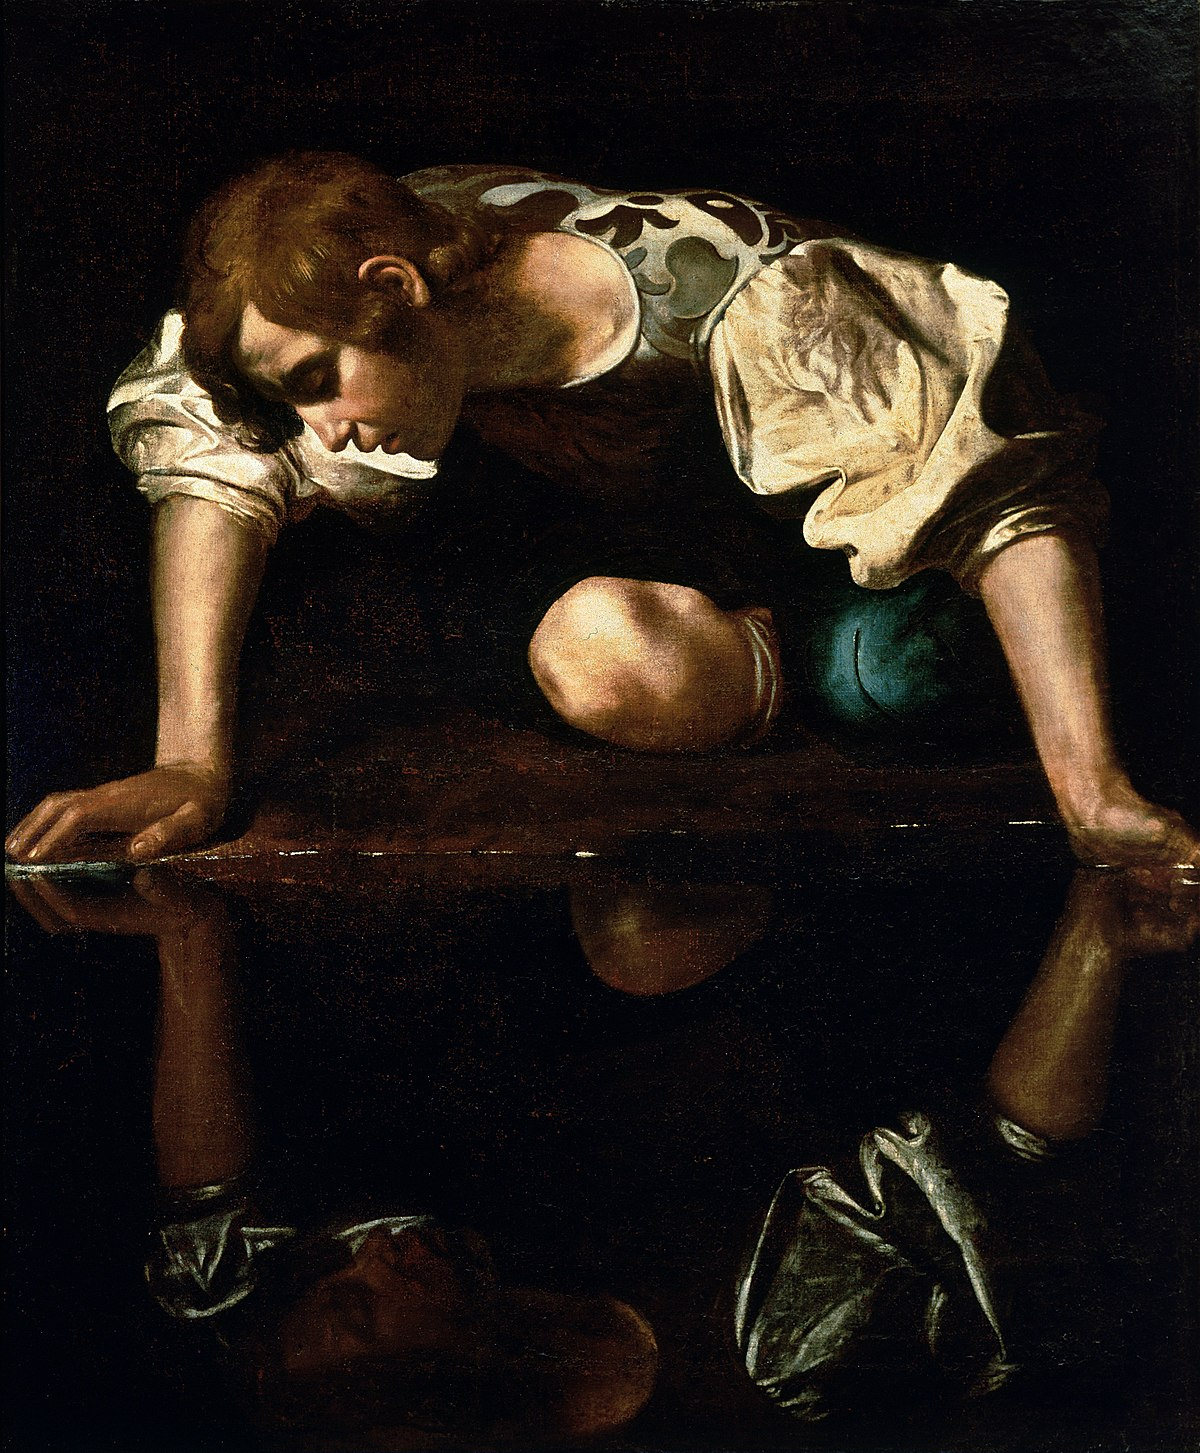 Narcissism in art: good or bad?